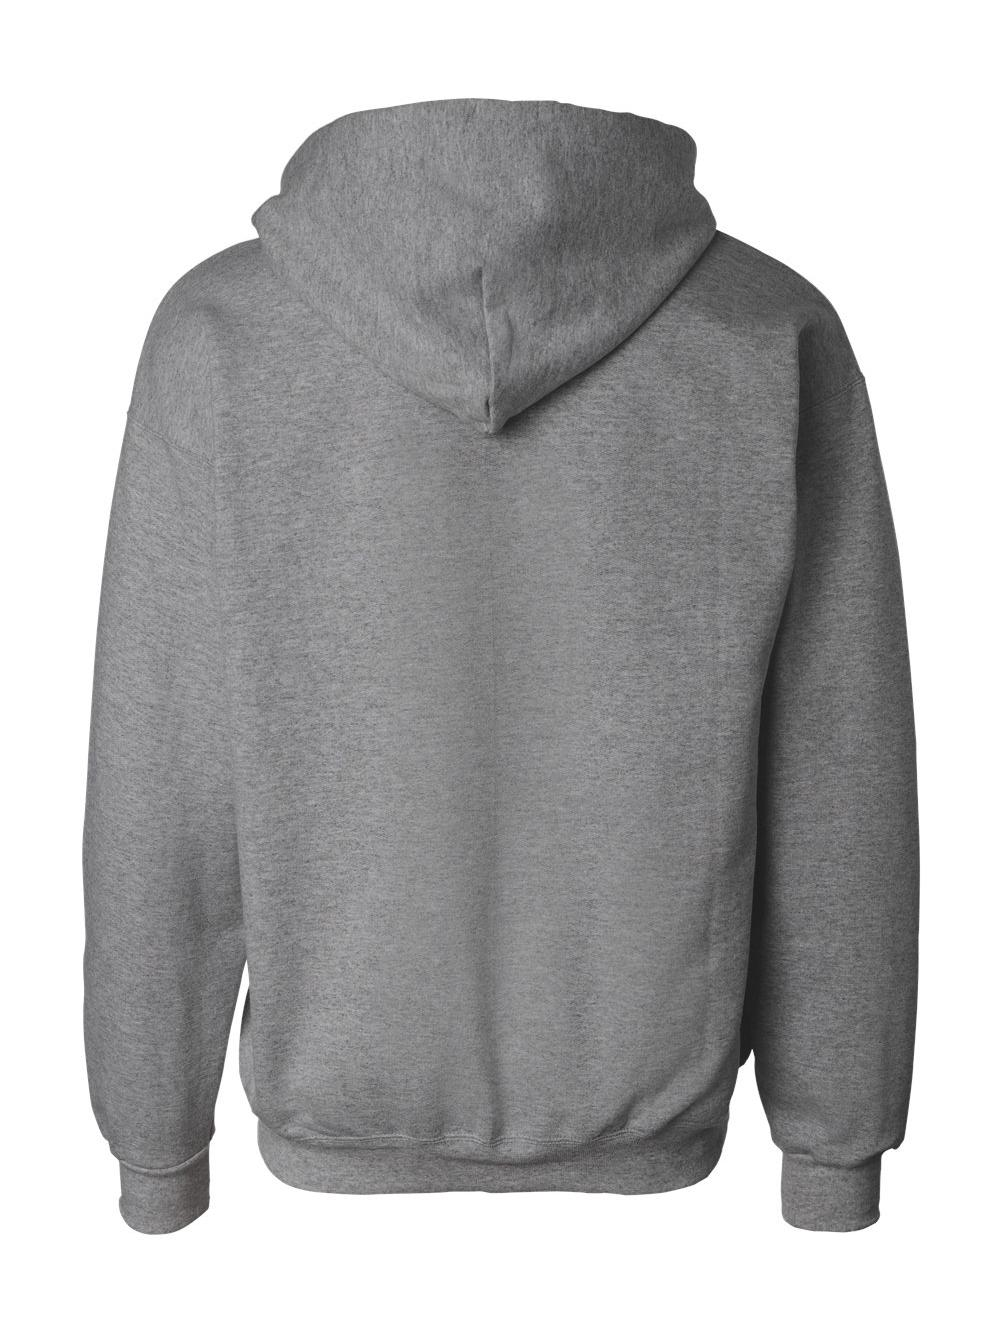 Hanes-Ultimate-Cotton-Full-Zip-Hooded-Sweatshirt-F280 thumbnail 19